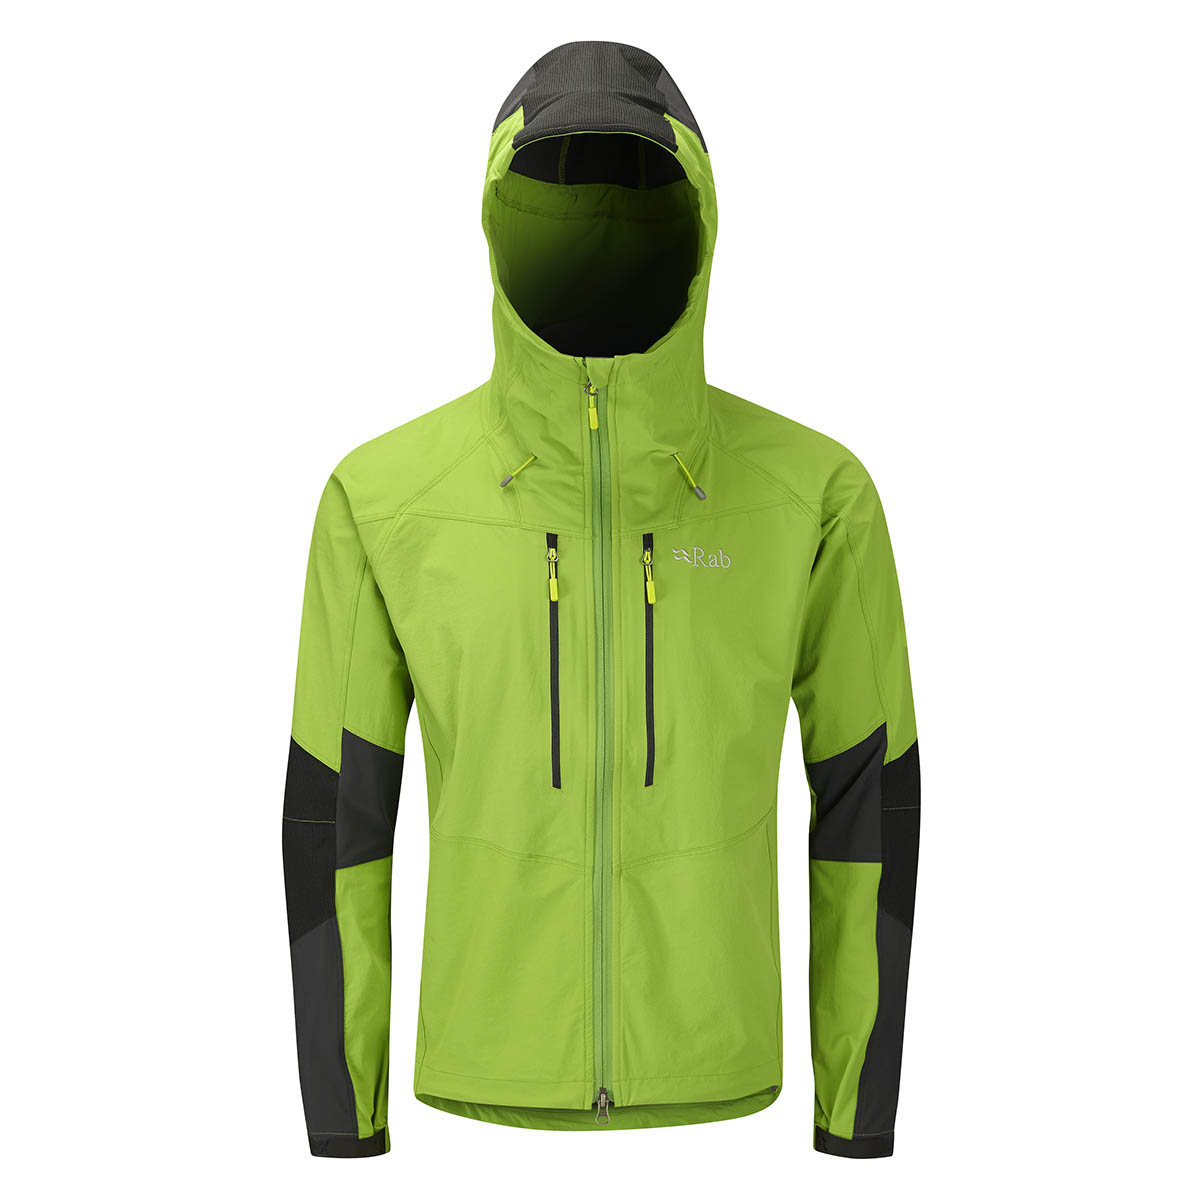 8e1c0996be6 Rab Torque Softshell Jacket